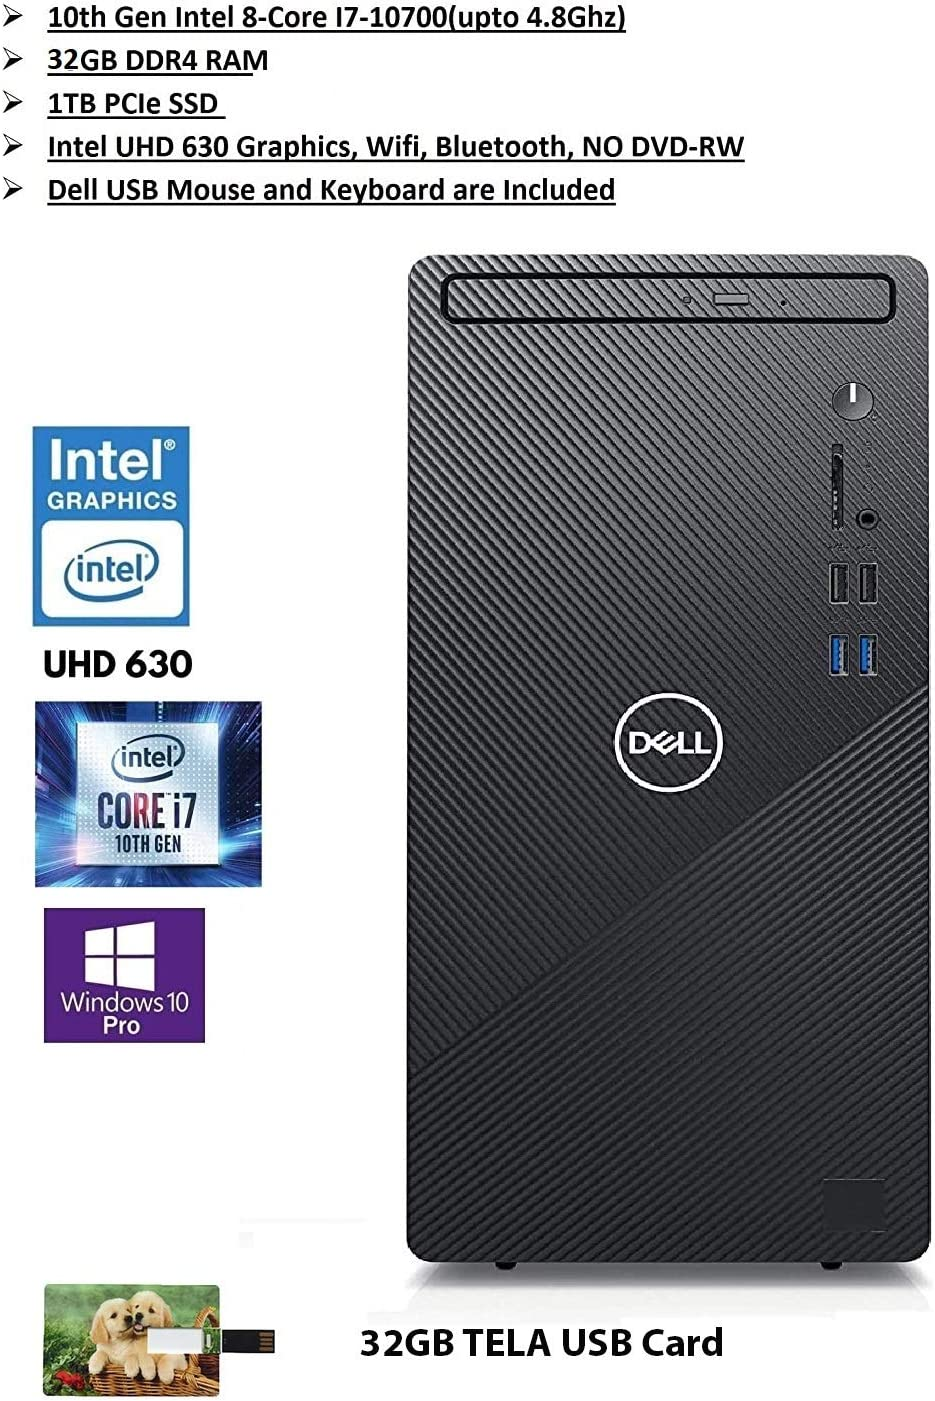 2020 Newest Dell Inspiron Biz Tower Desktop: 10th Gen Intel 8-Core i7 Processor(Upto 4.8Ghz), 32GB RAM, 1TB PCIe SSD, Intel UHD, WiFi, Bluetooth, VGA, HDMI, USB3.0, Win 10 Pro | 32GB Tela USB Card